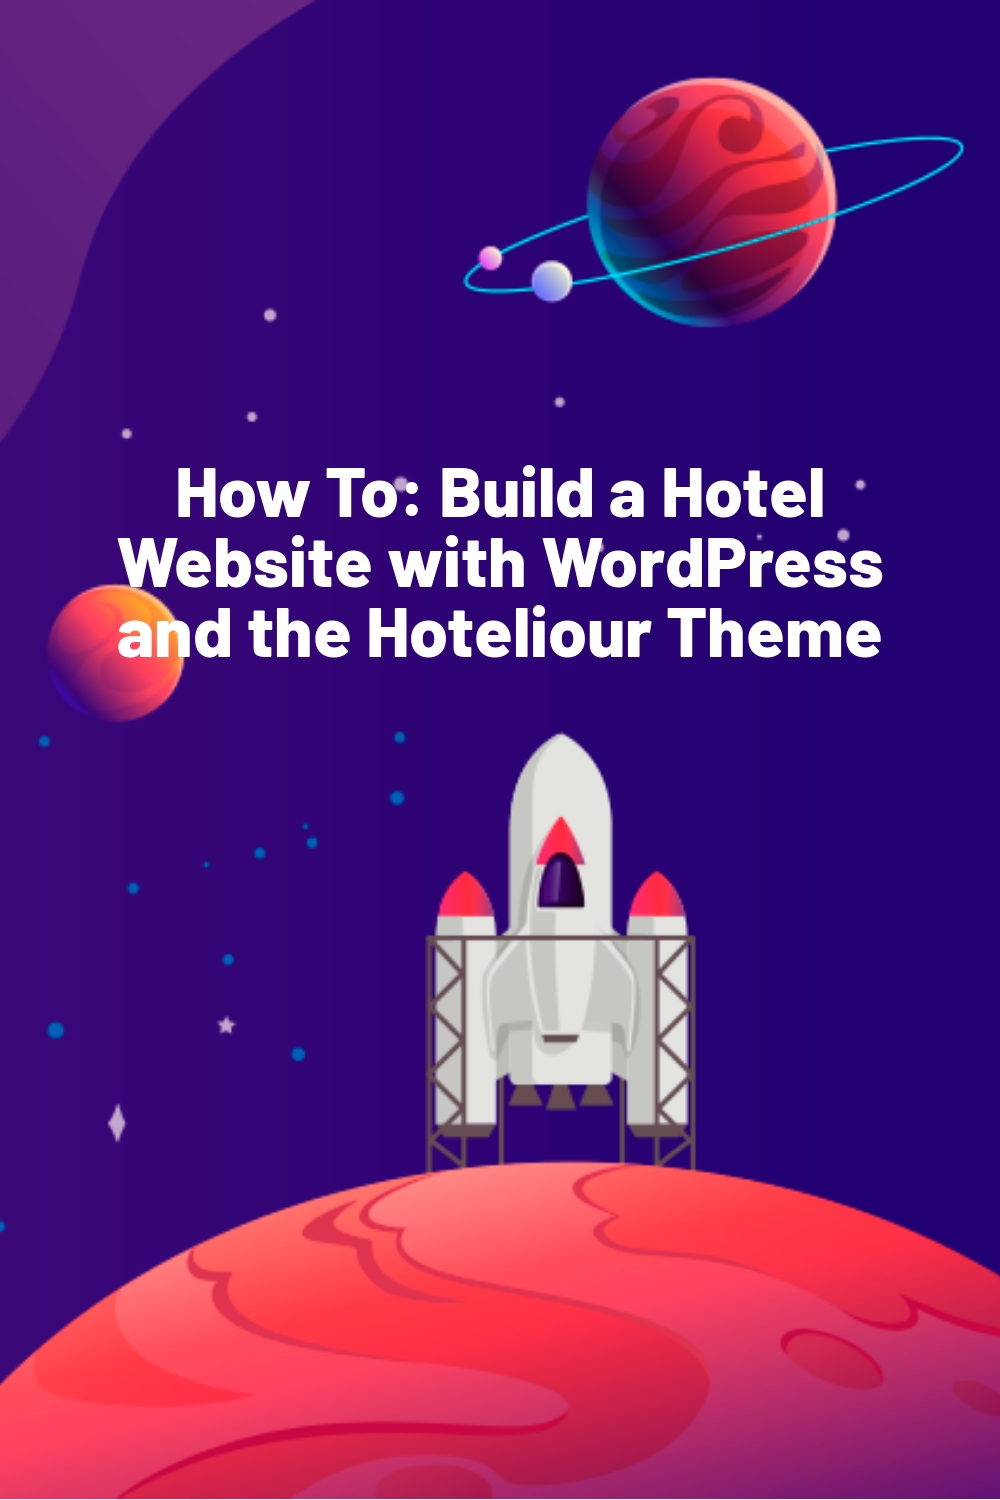 How To: Build a Hotel Website with WordPress and the Hoteliour Theme